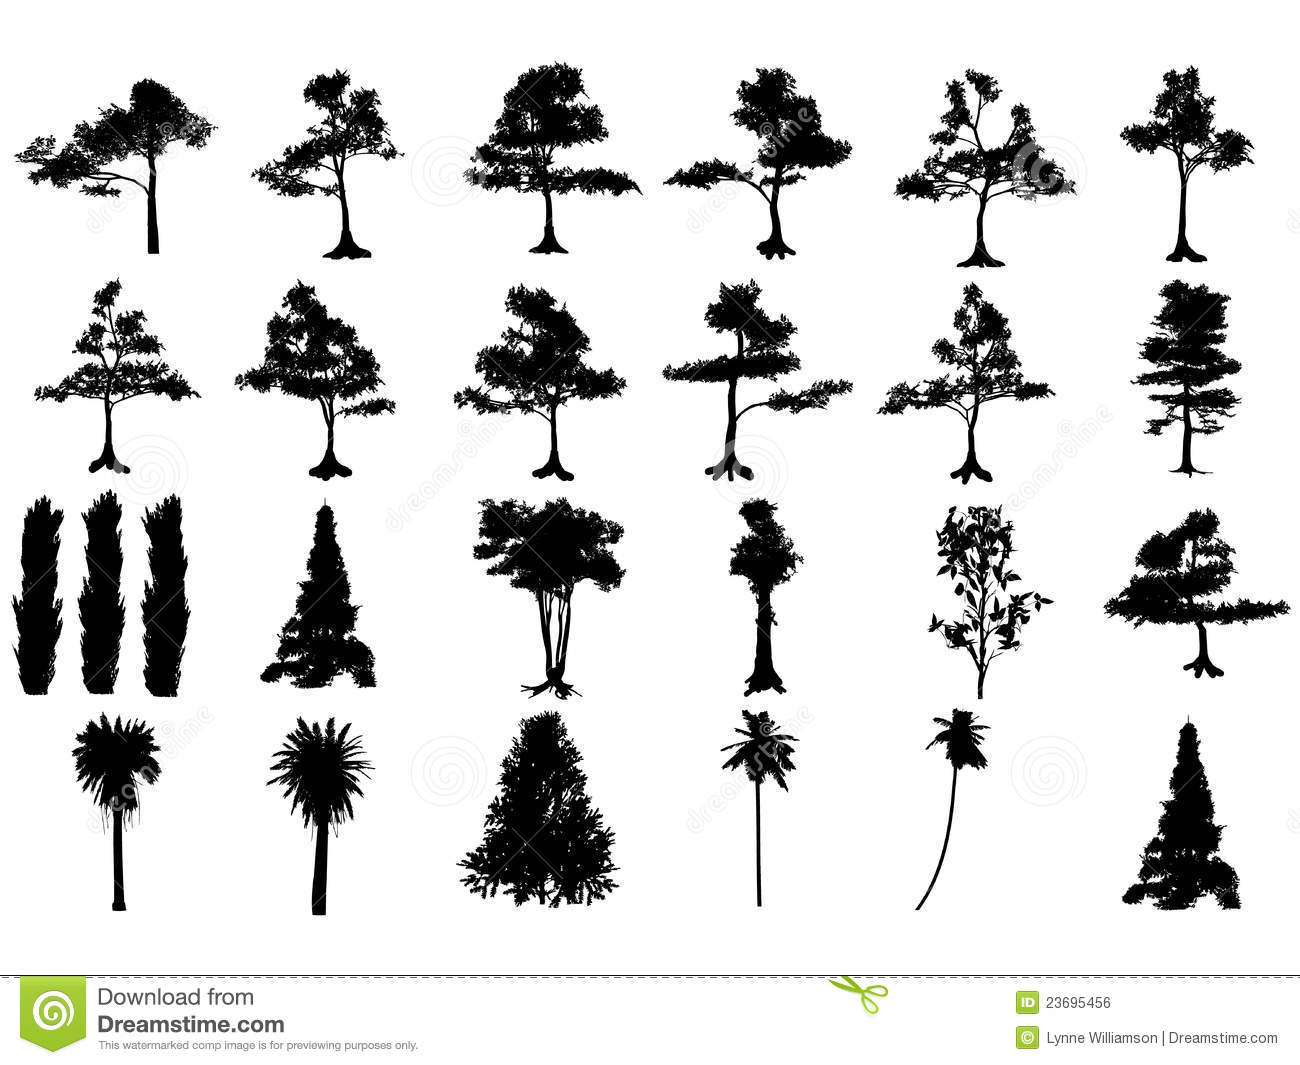 Cypress swamp clipart 20 free Cliparts | Download images ...